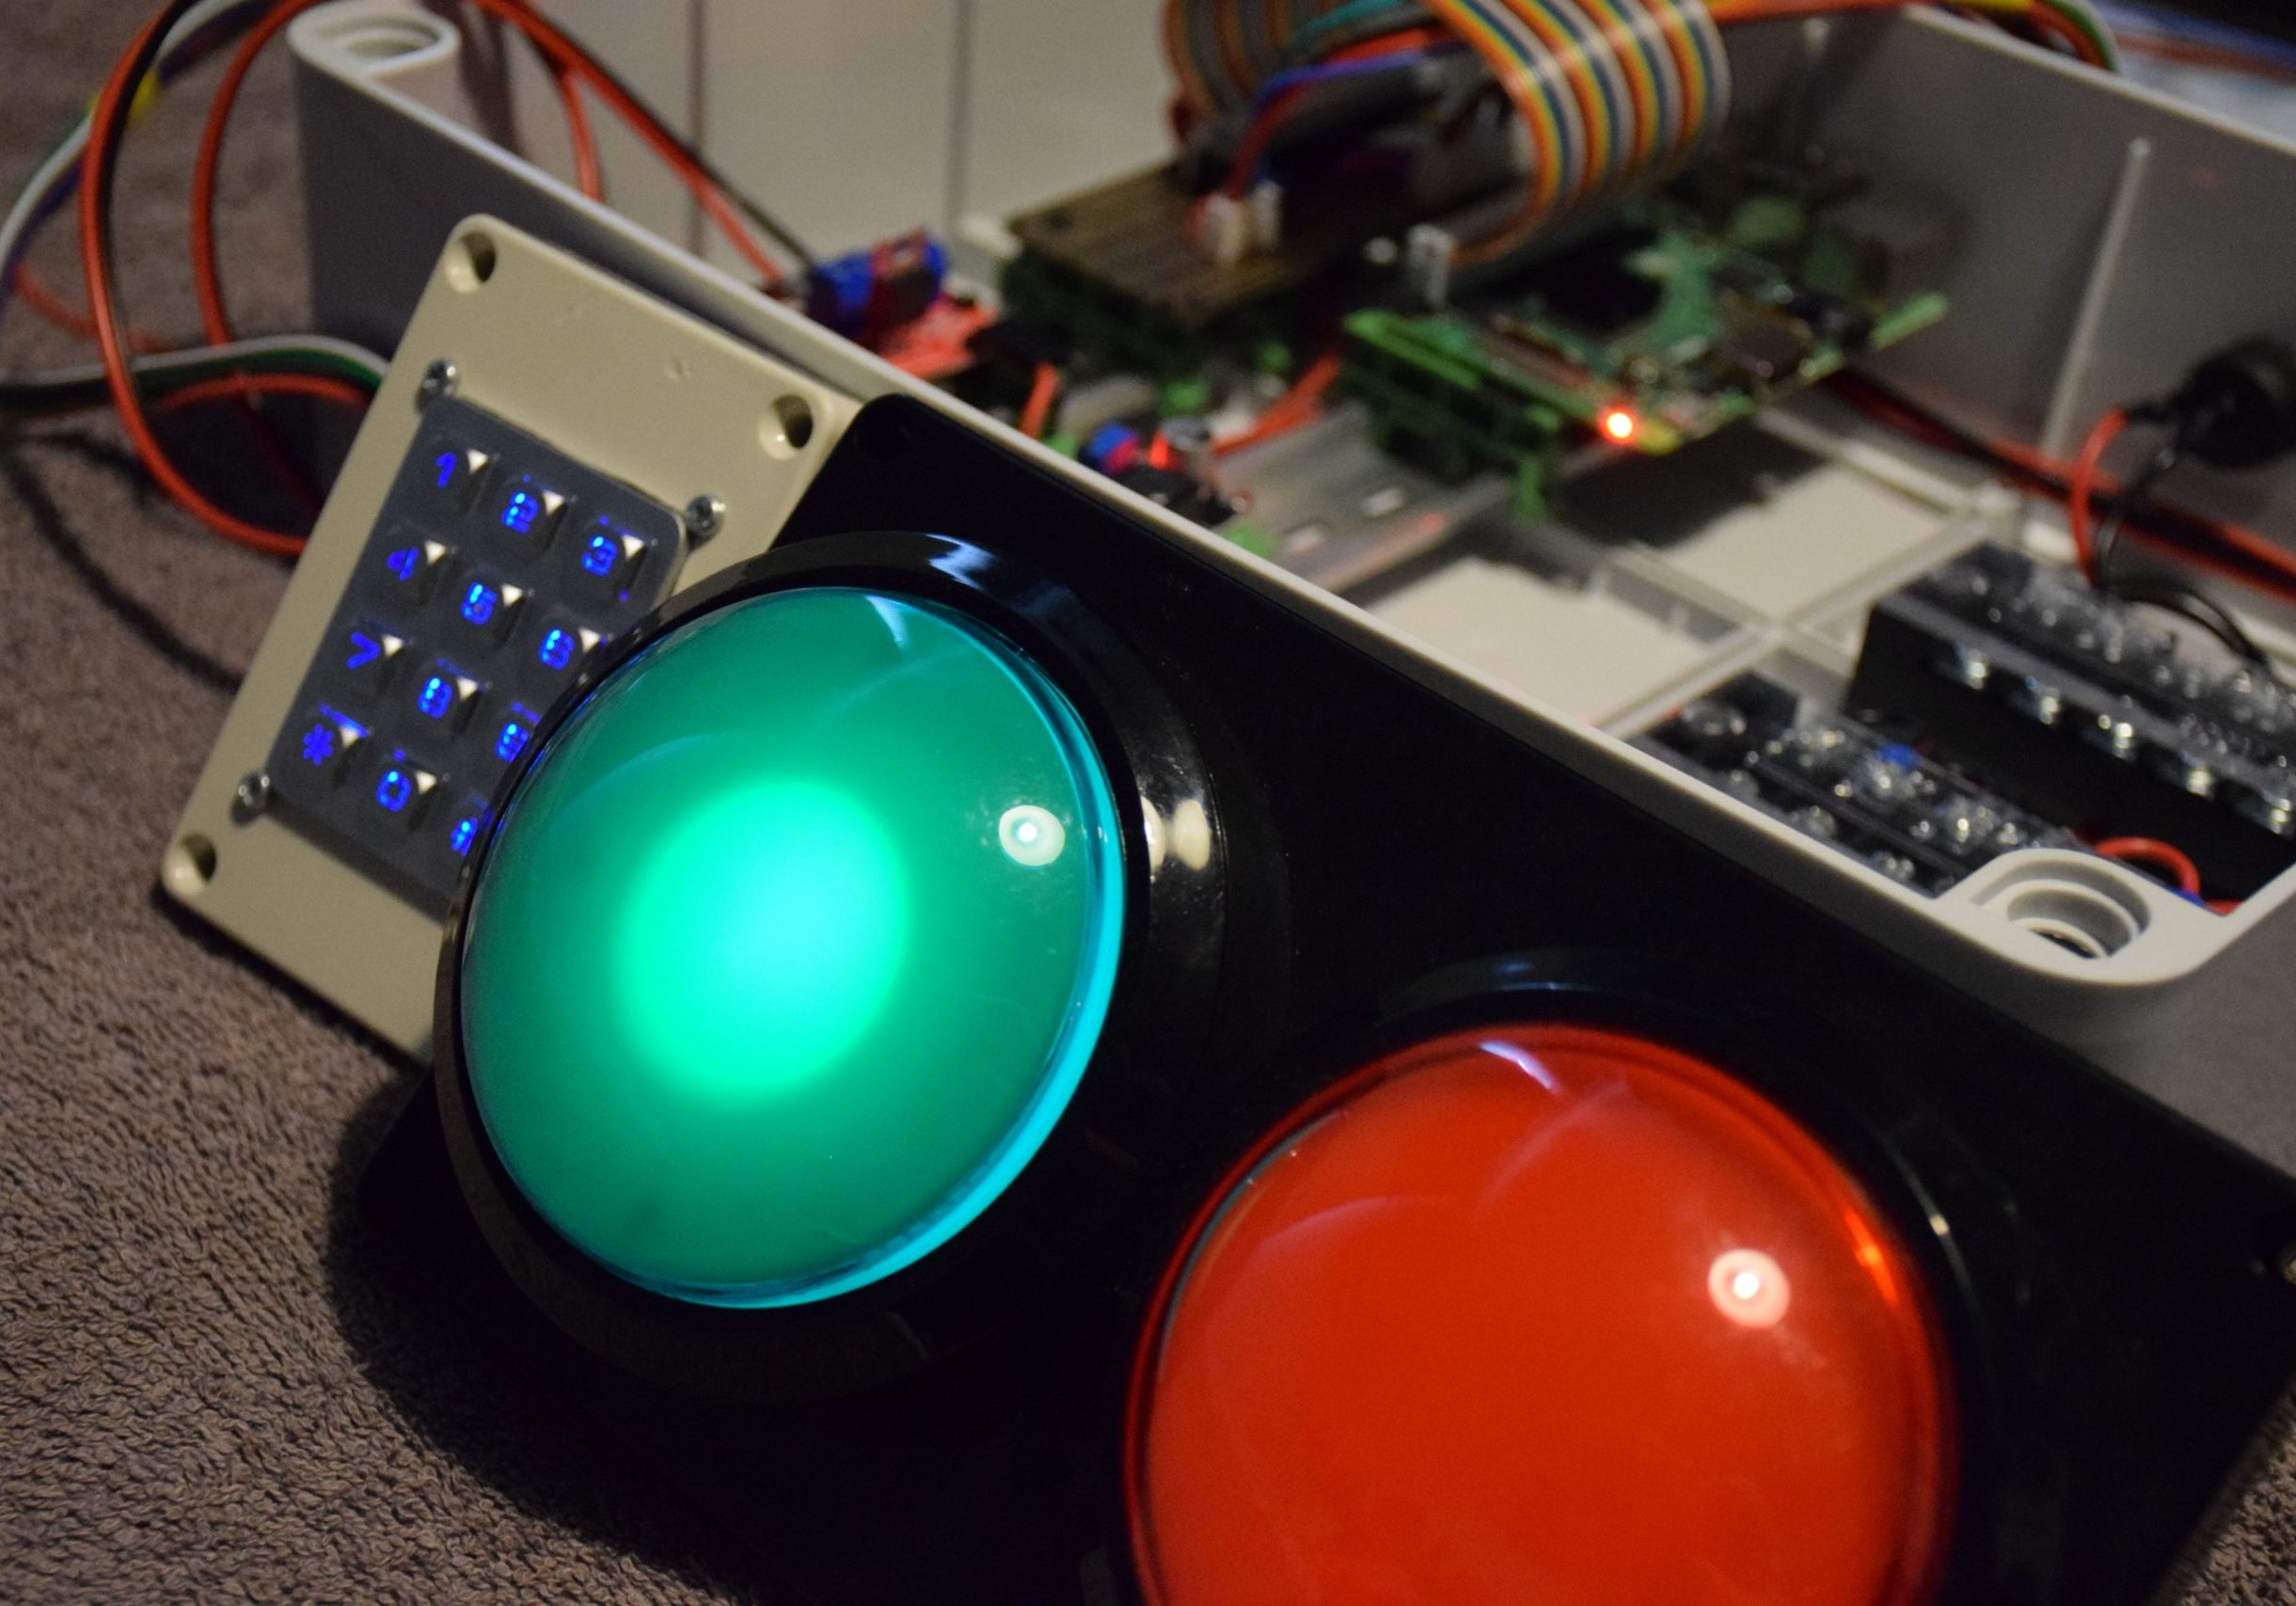 Photograph of illuminated keypad with large green and red LED lights which are in front of a box of cabled components